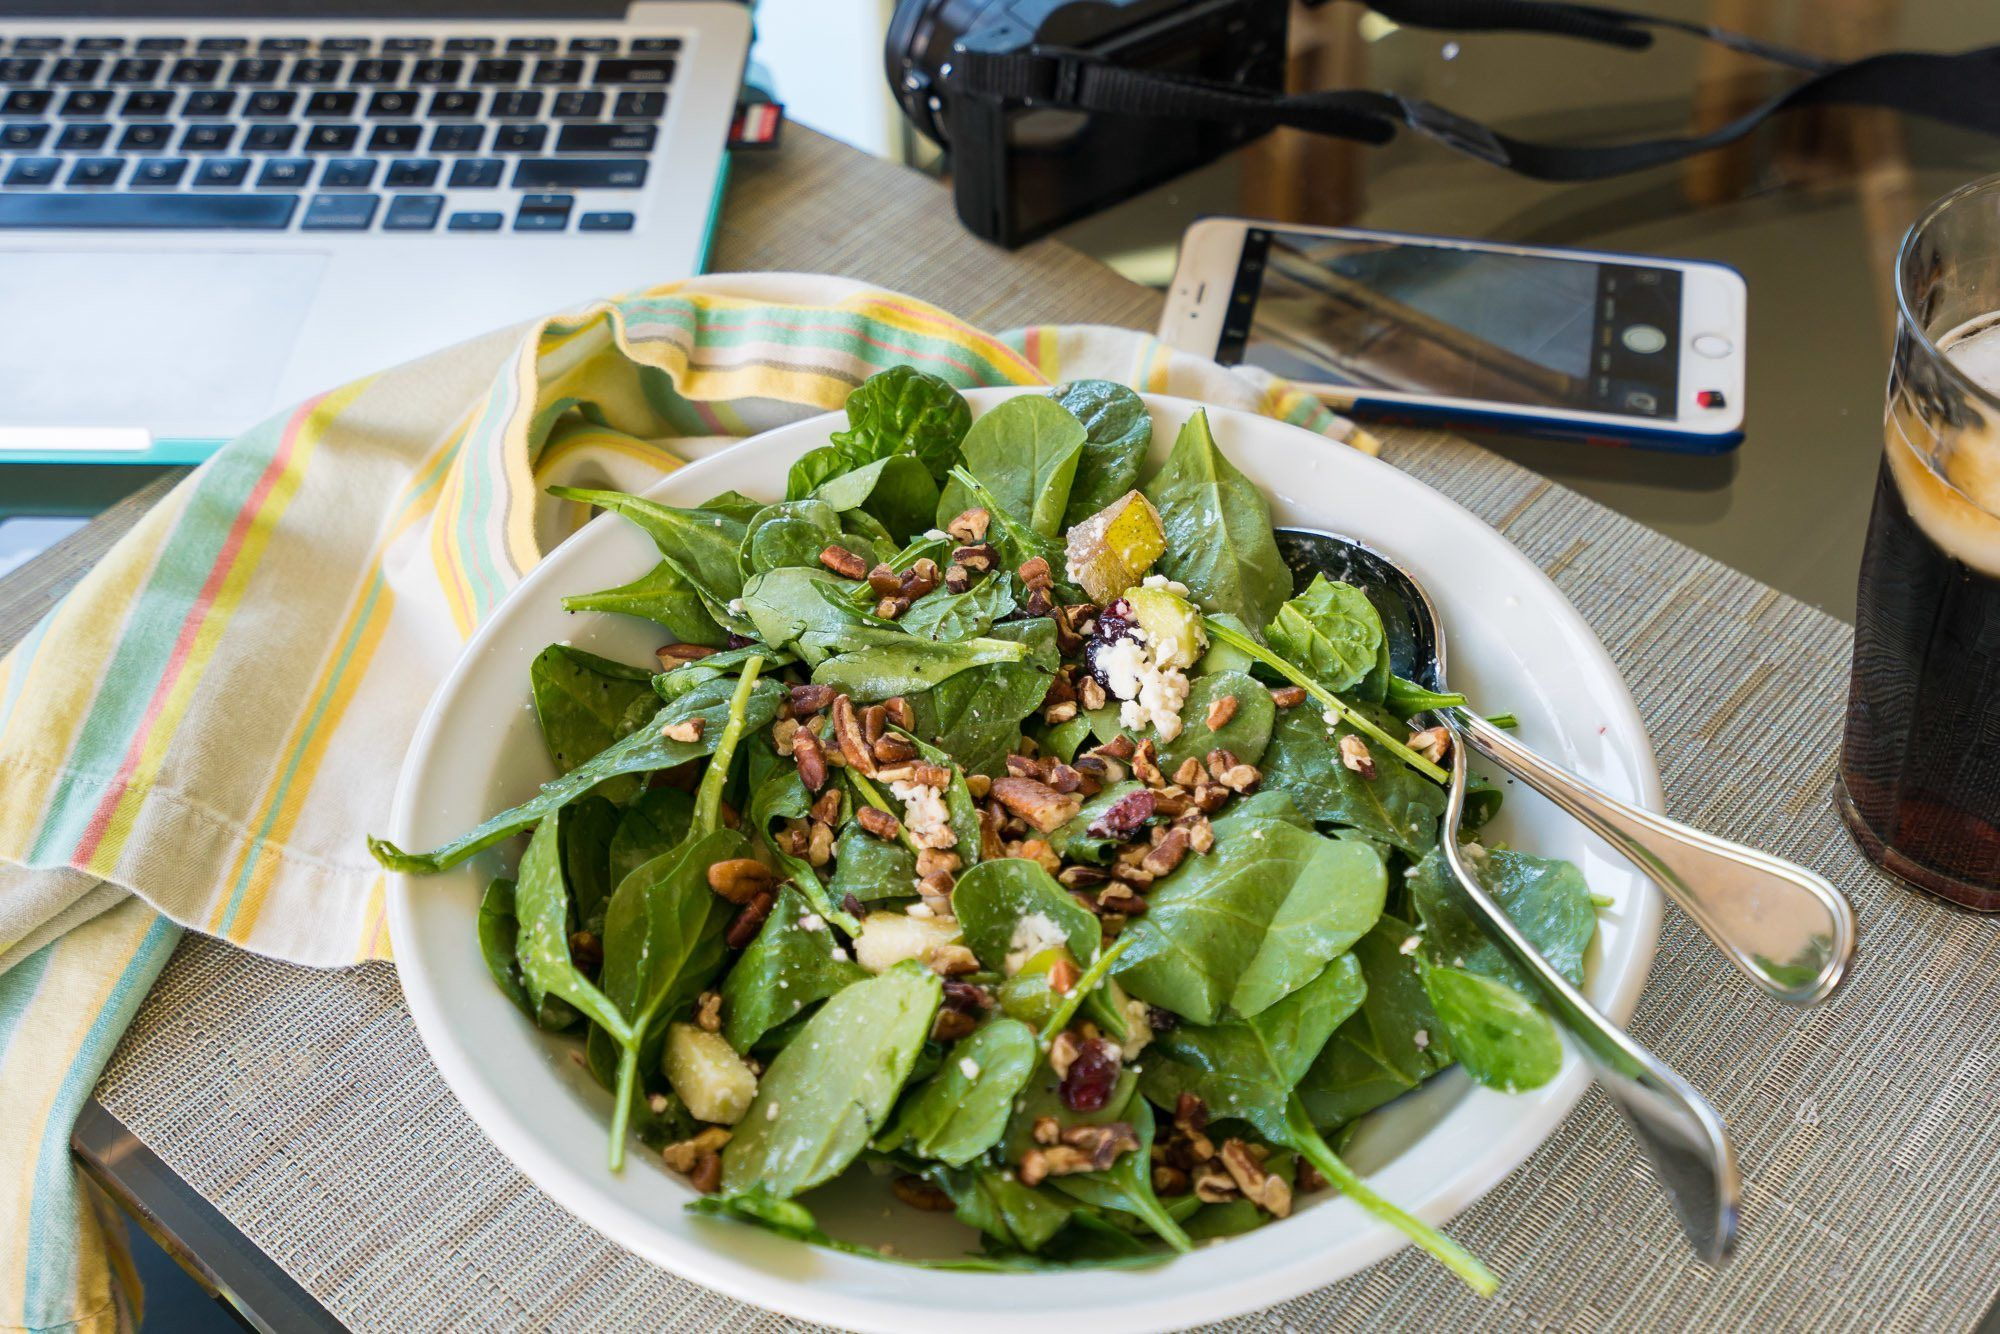 Farmer's Fix delivers salads within San Diego. It is the perfect solution for busy work-at-home parents.